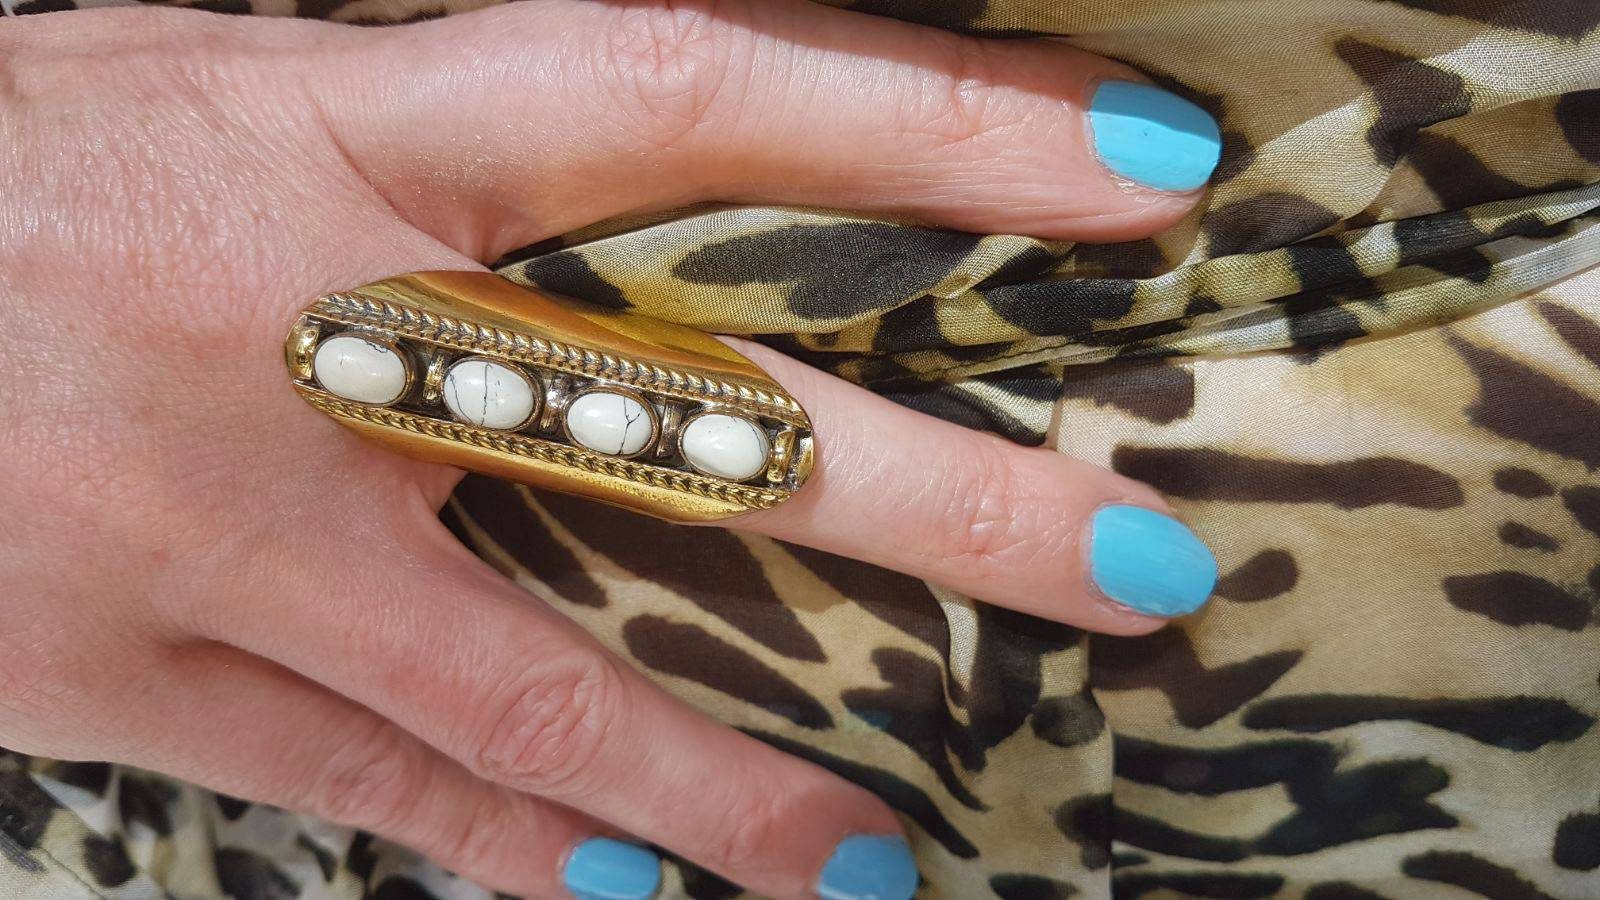 Poolside Glamour With Miss Tunica, Mondello leopard print tunic, Piha ring